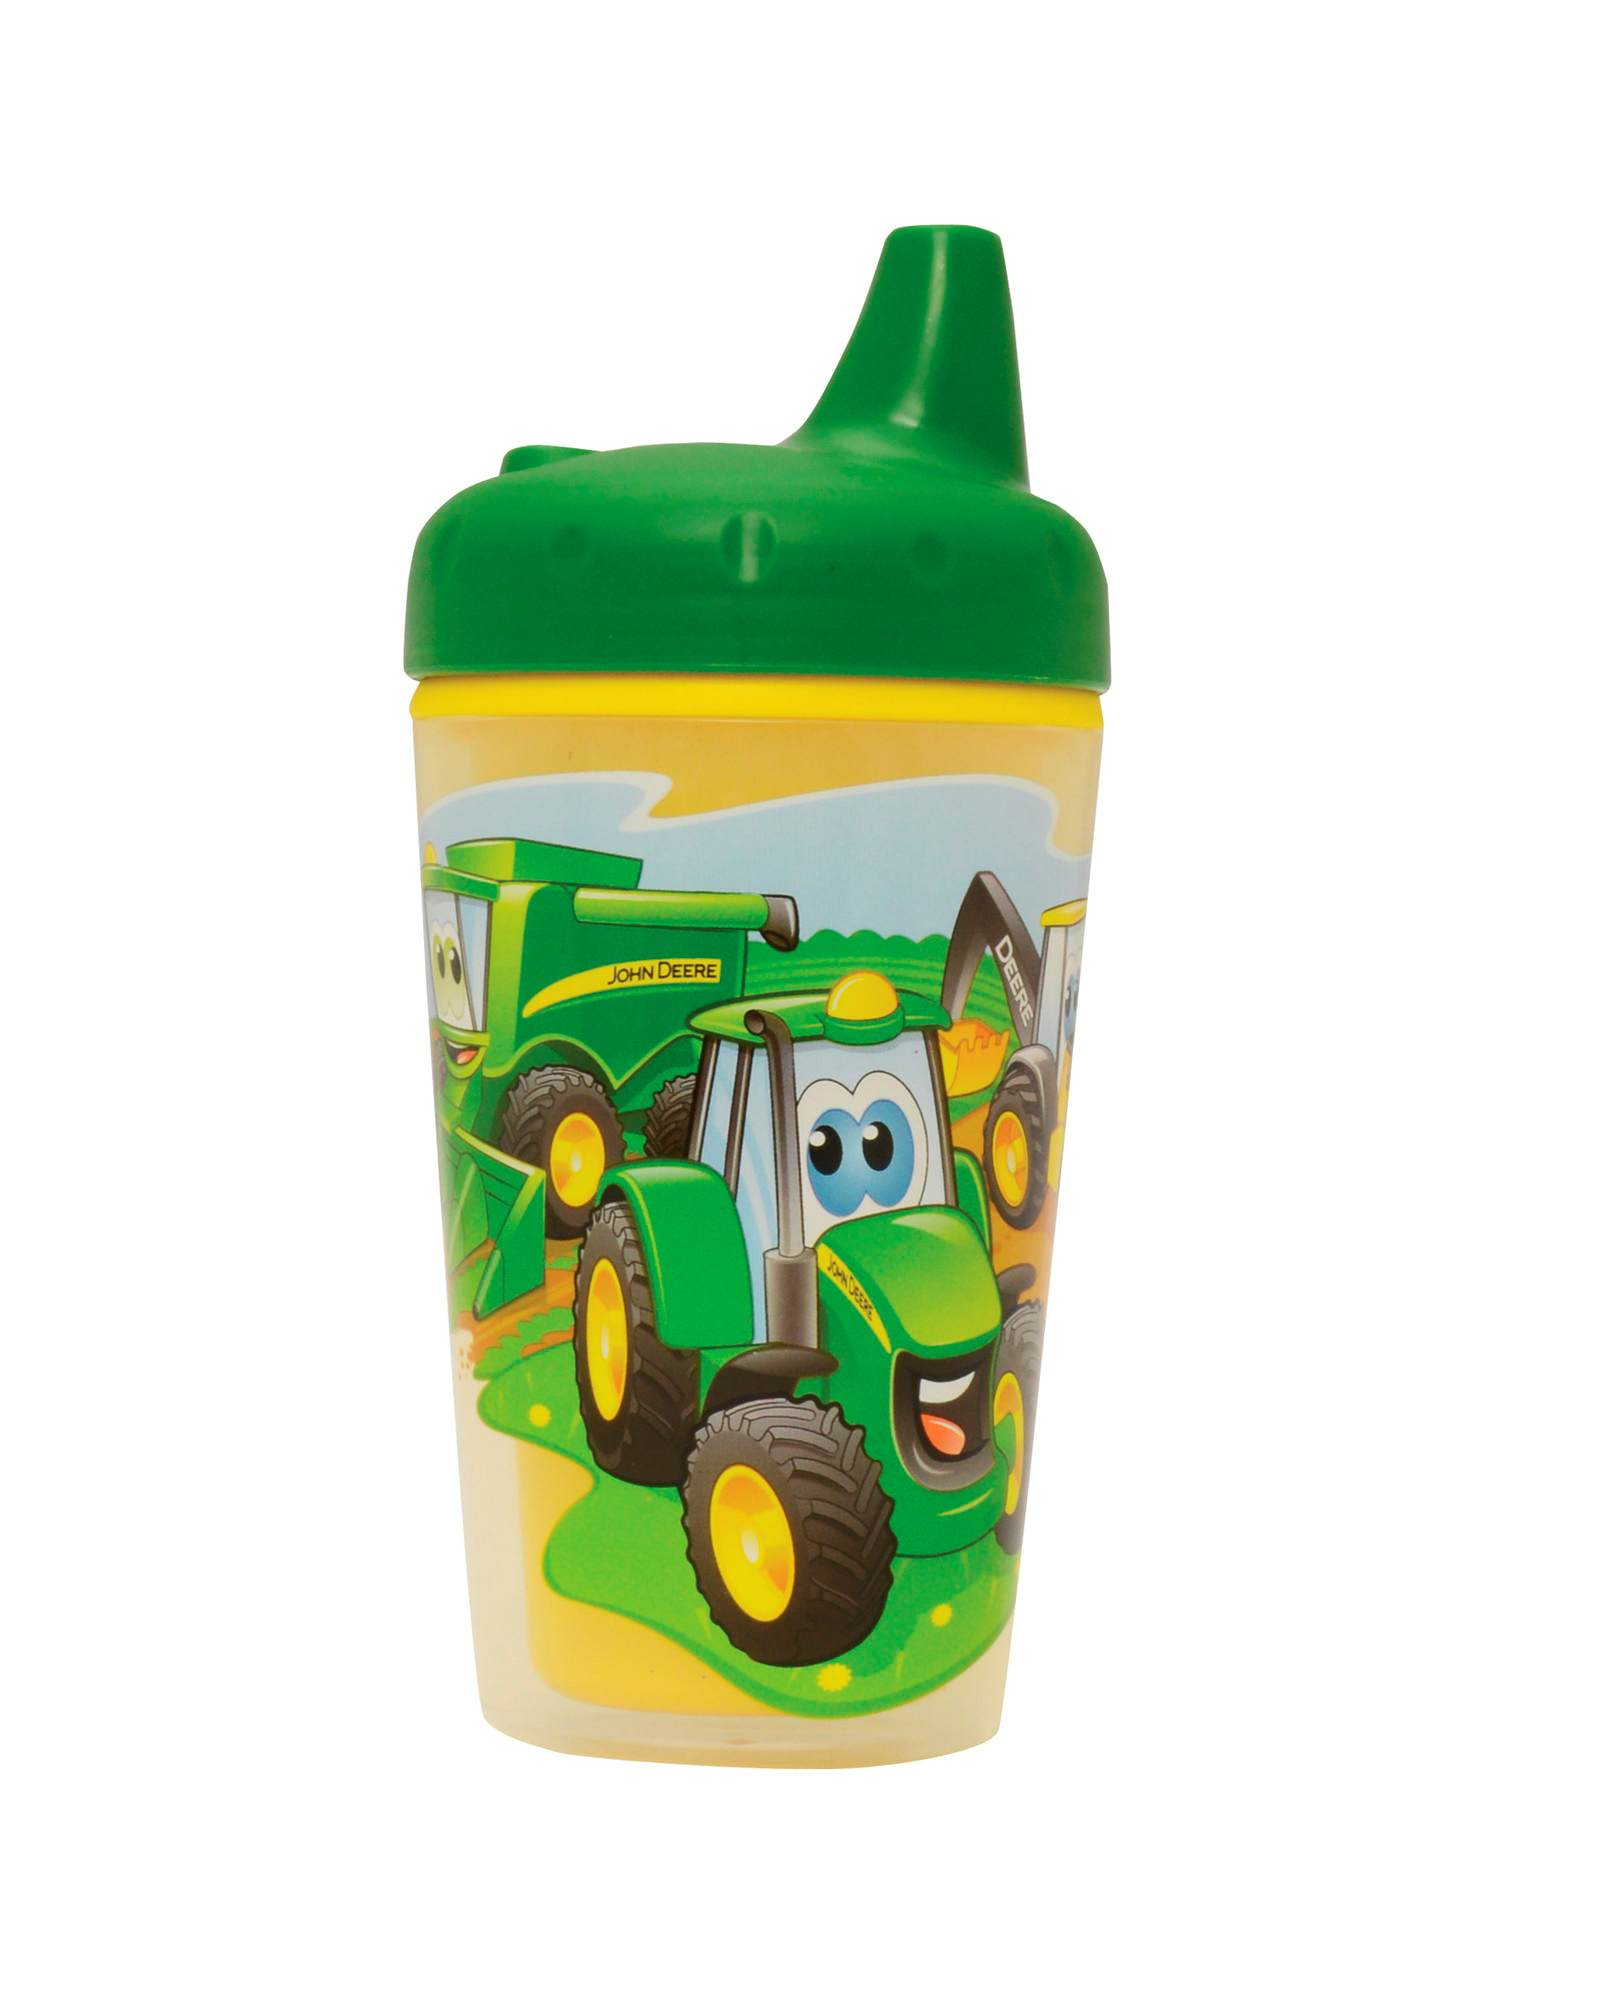 TOMY JOHN DEERE INSULATED SIPPY CUP WITH ONE PIECE LID - 9 OZ